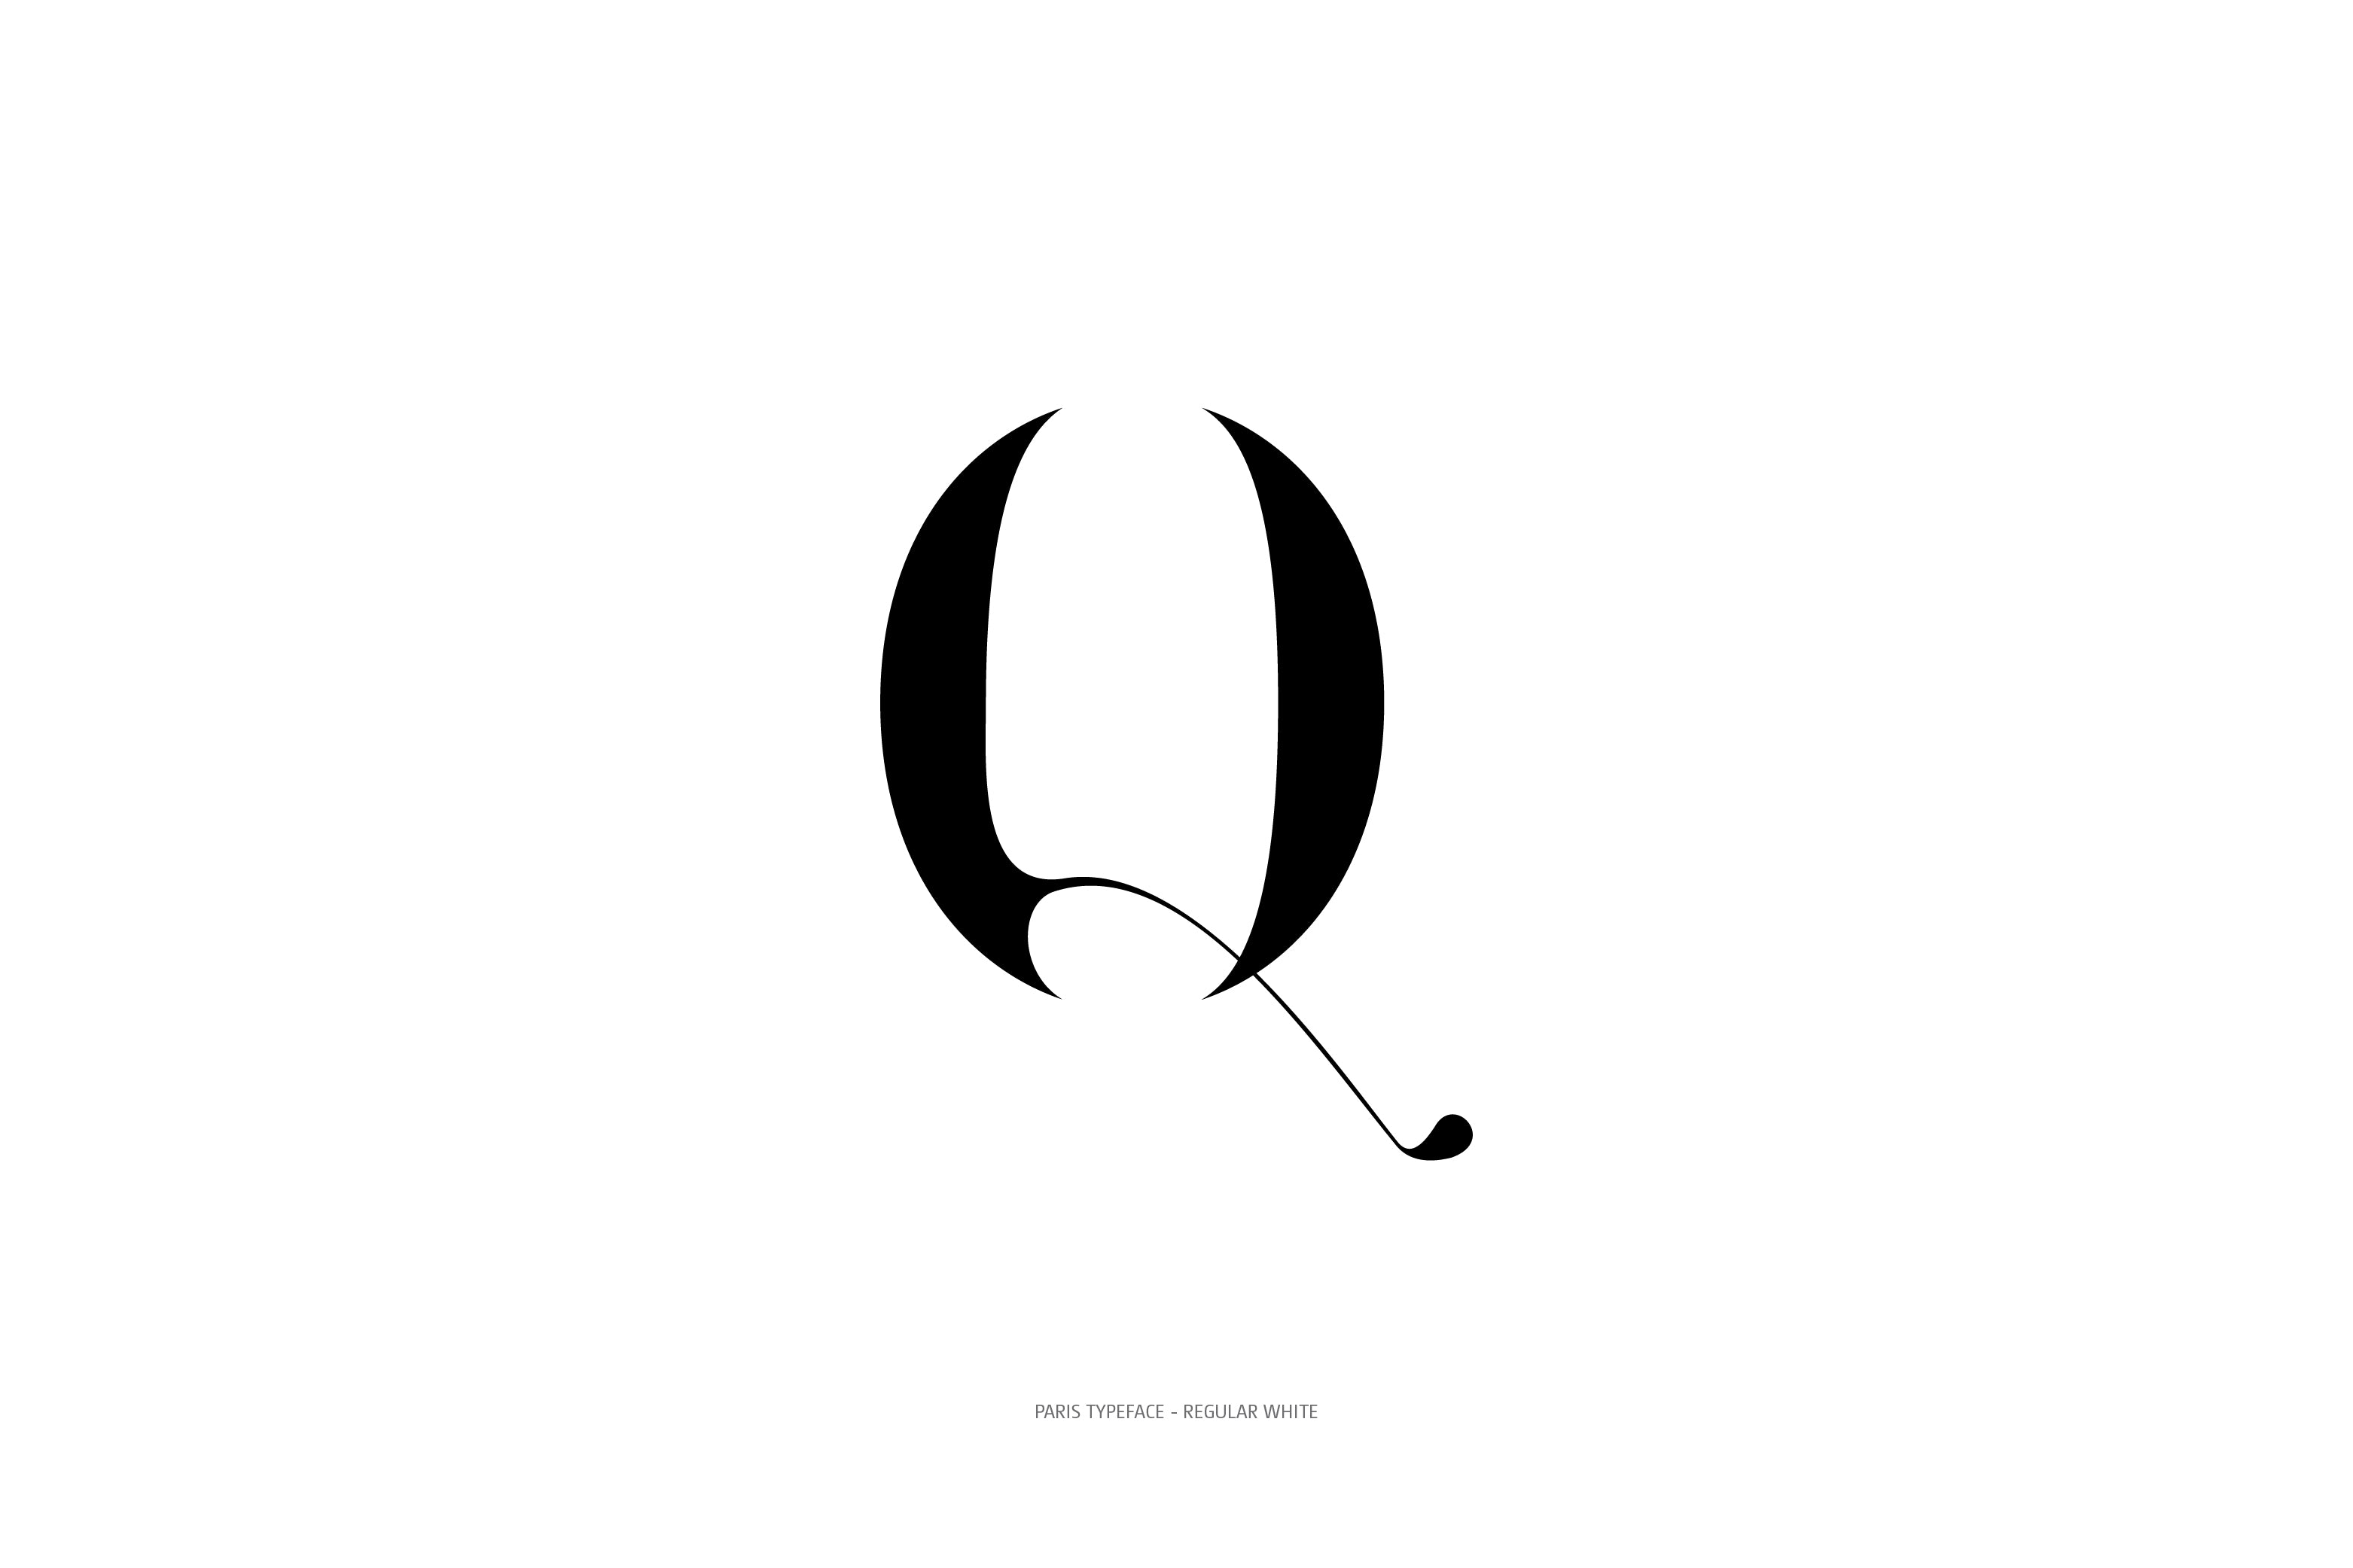 Paris Typeface Regular White Q